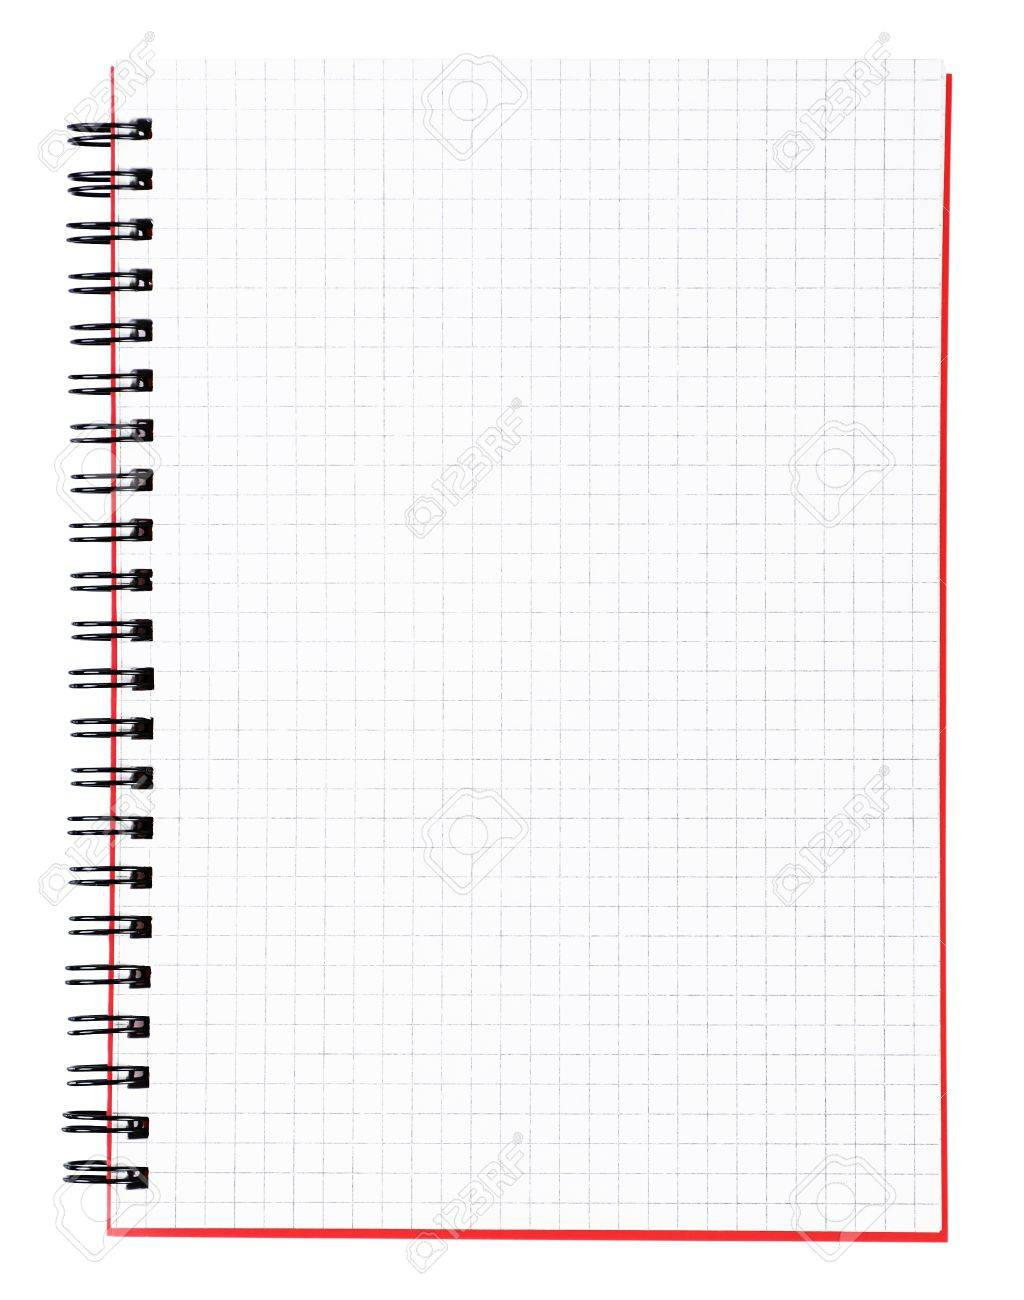 blank page of a notebook with black binder and red cover vertical